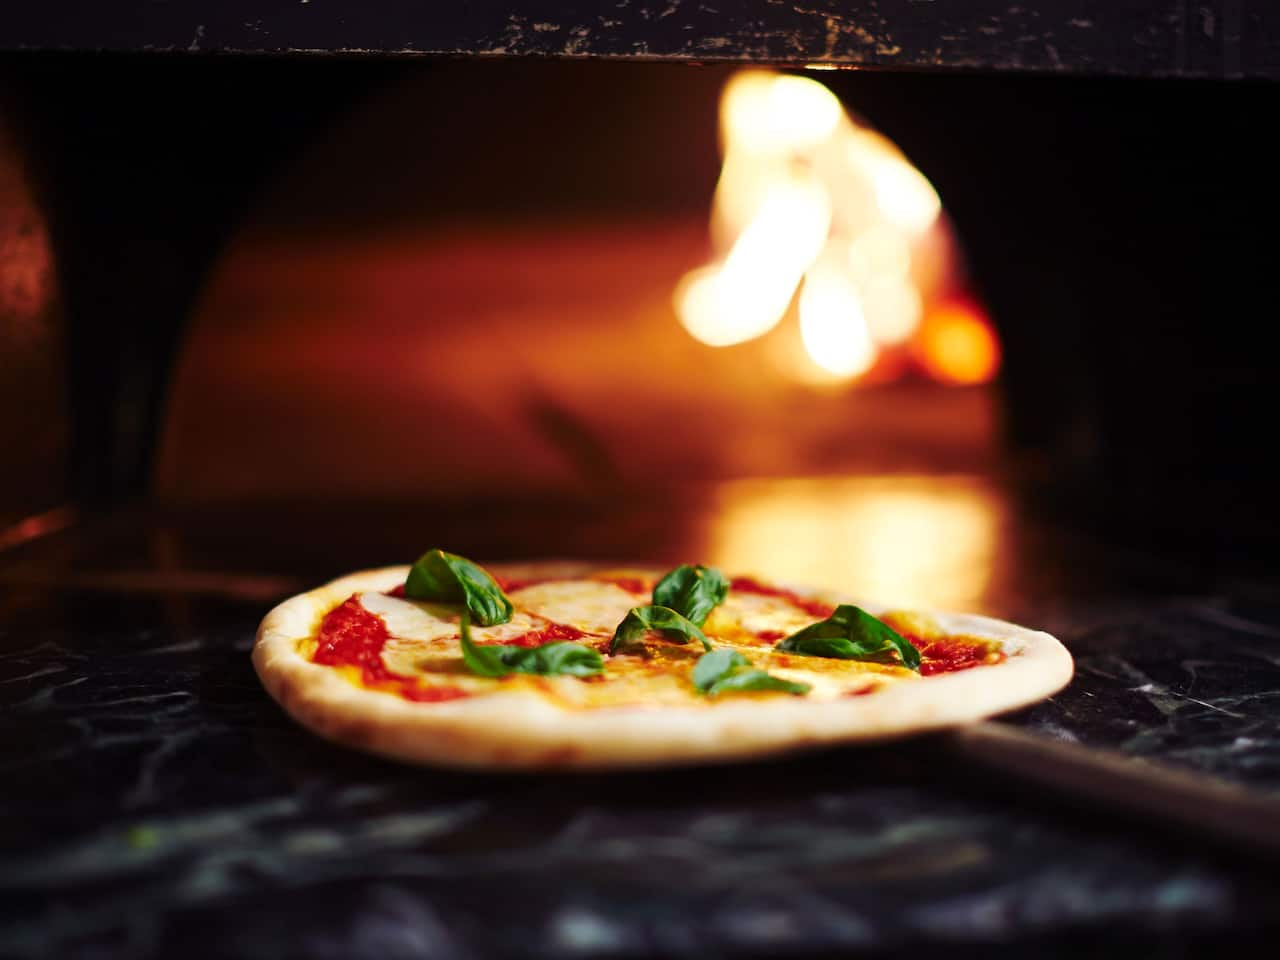 Hyatt Regency Osaka Basilico Pizza and Oven